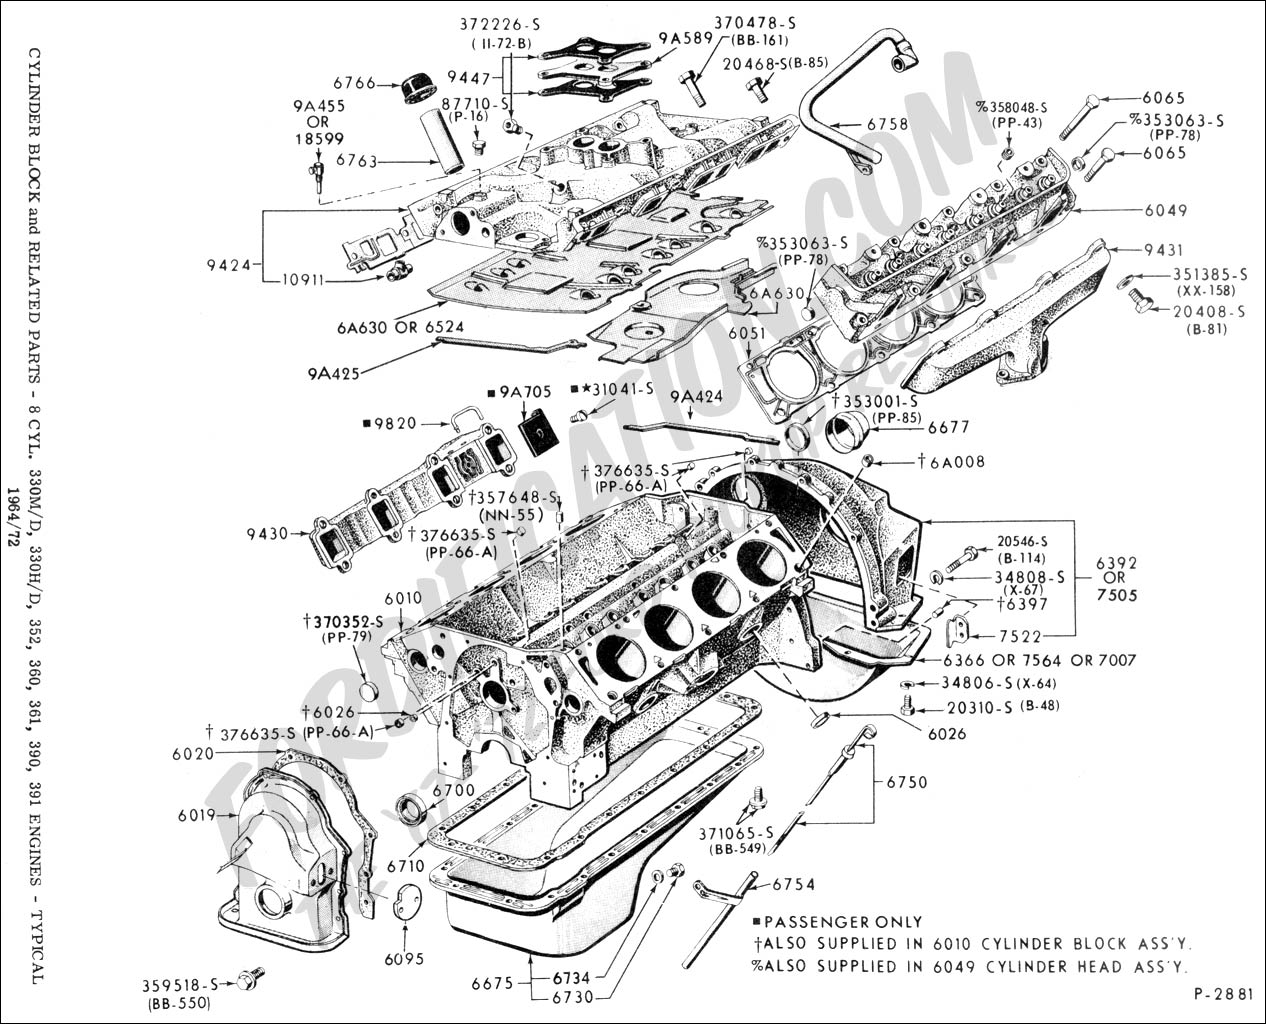 332 428 Ford Fe Engine Forum Assembly Pictures Of The Fe If People Want Them For Reference